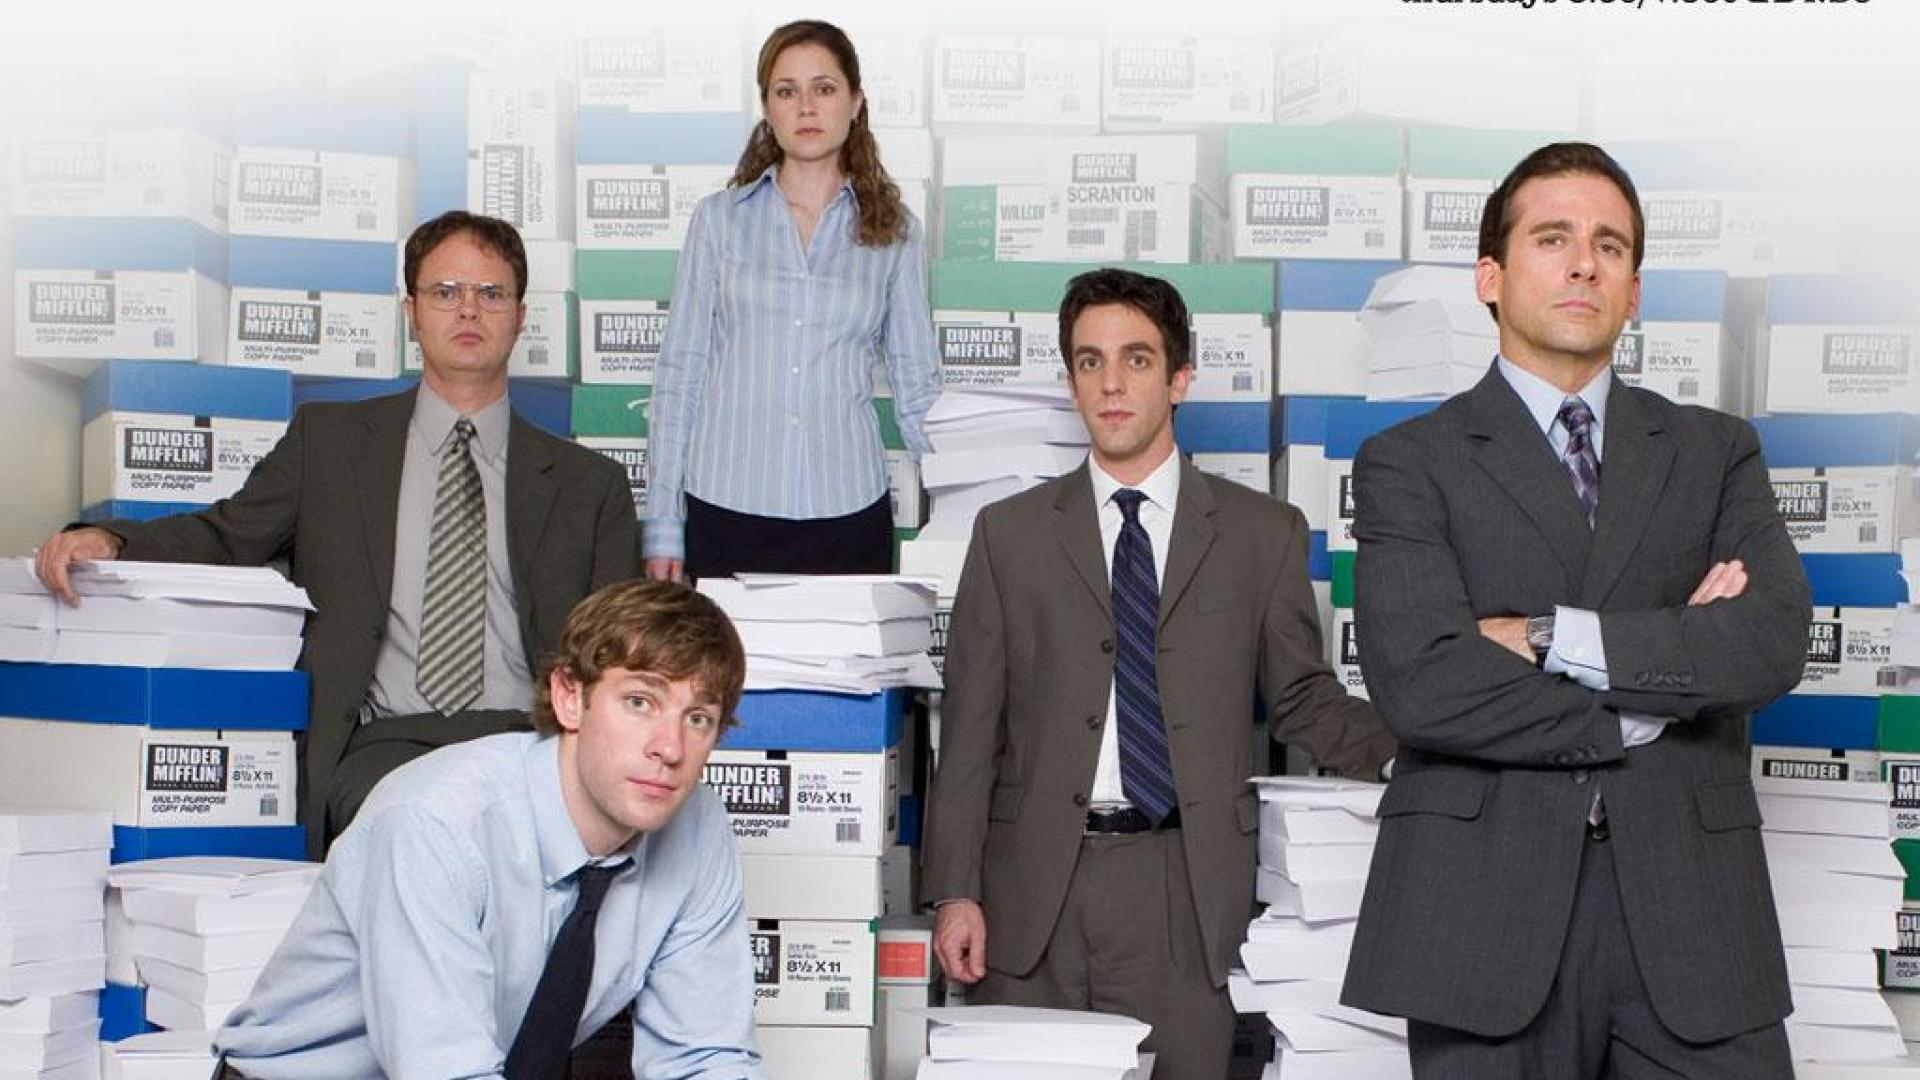 hd wallpapers office. The Office Full HD Wallpaper 1920x1080 Hd Wallpapers